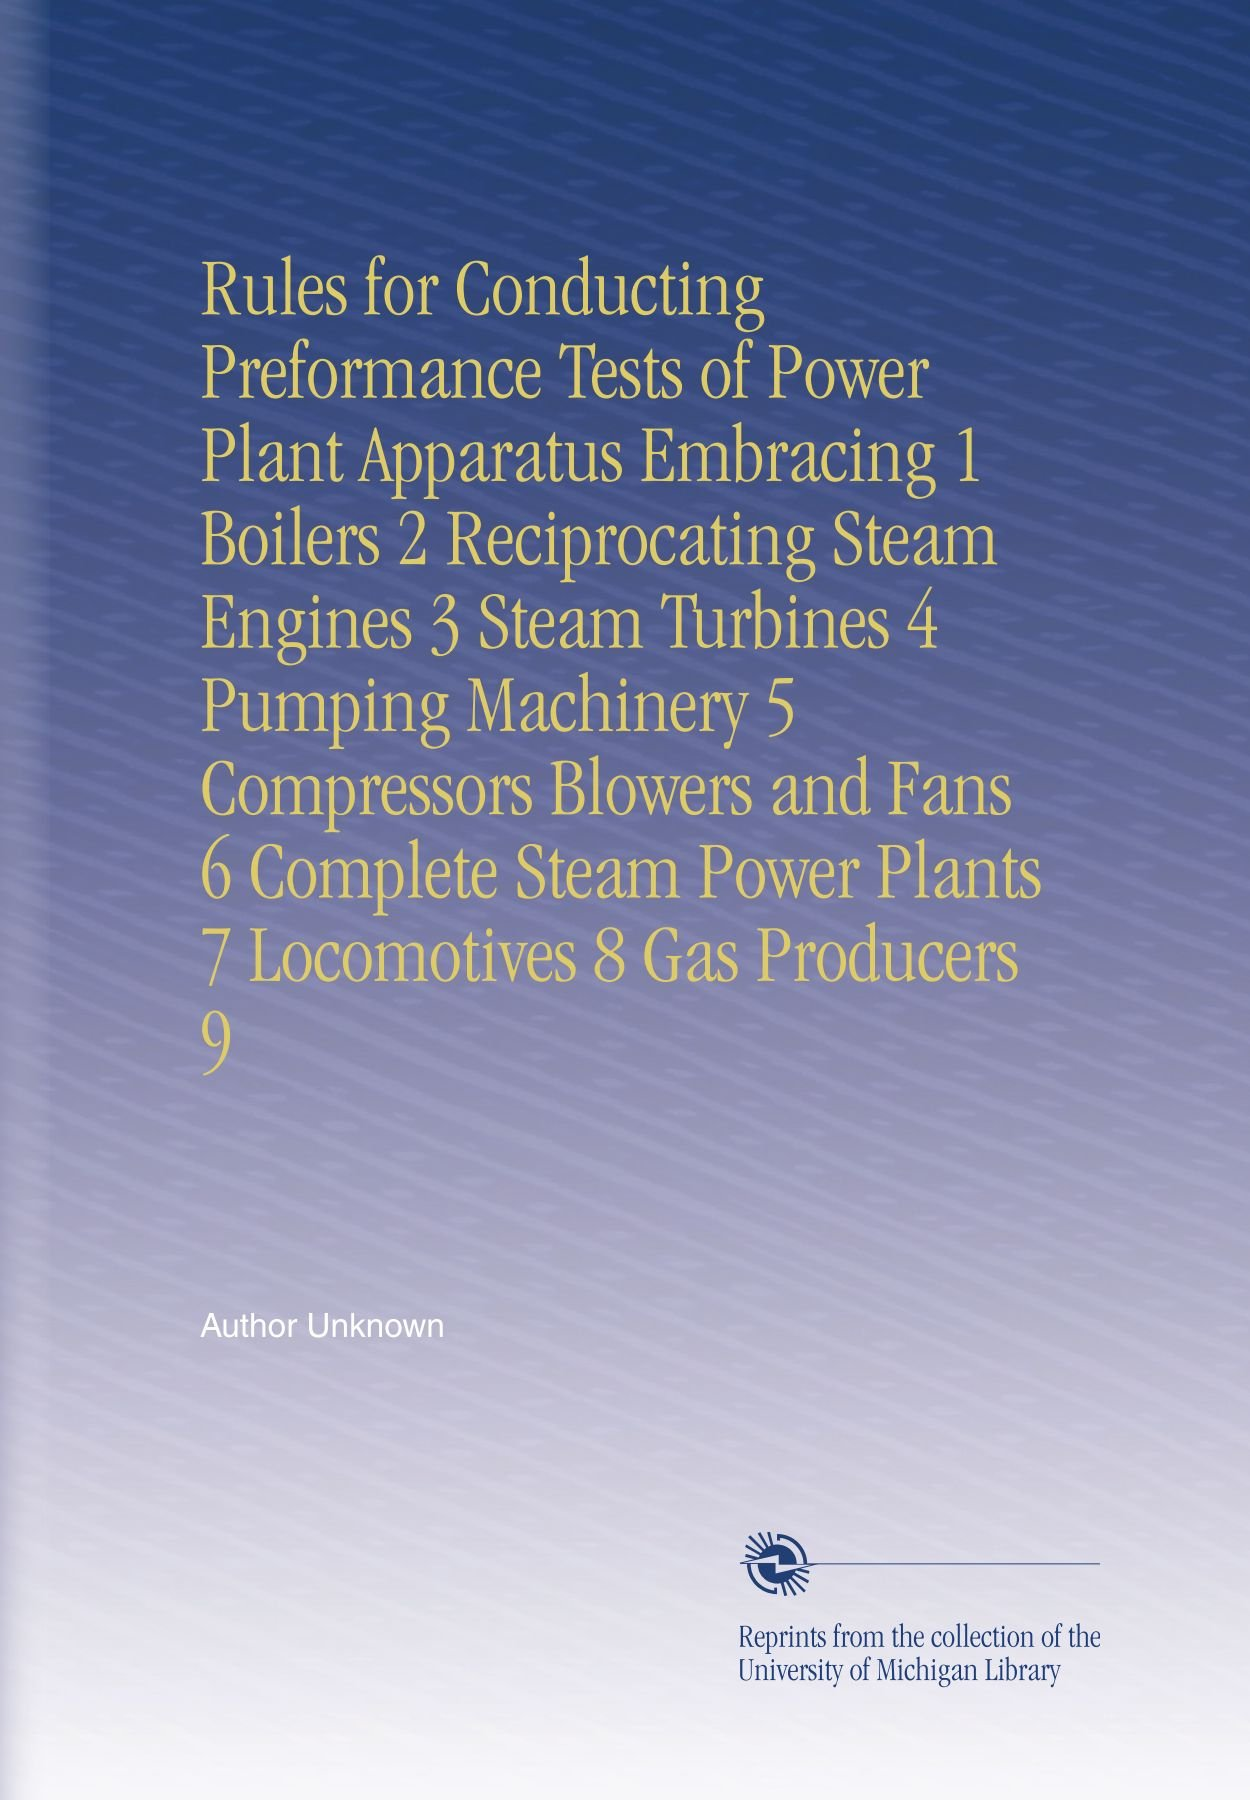 Rules for Conducting Preformance Tests of Power Plant Apparatus Embracing 1 Boilers 2 Reciprocating Steam Engines 3 Steam Turbines 4 Pumping Machinery ... Power Plants 7 Locomotives 8 Gas Producers 9 PDF